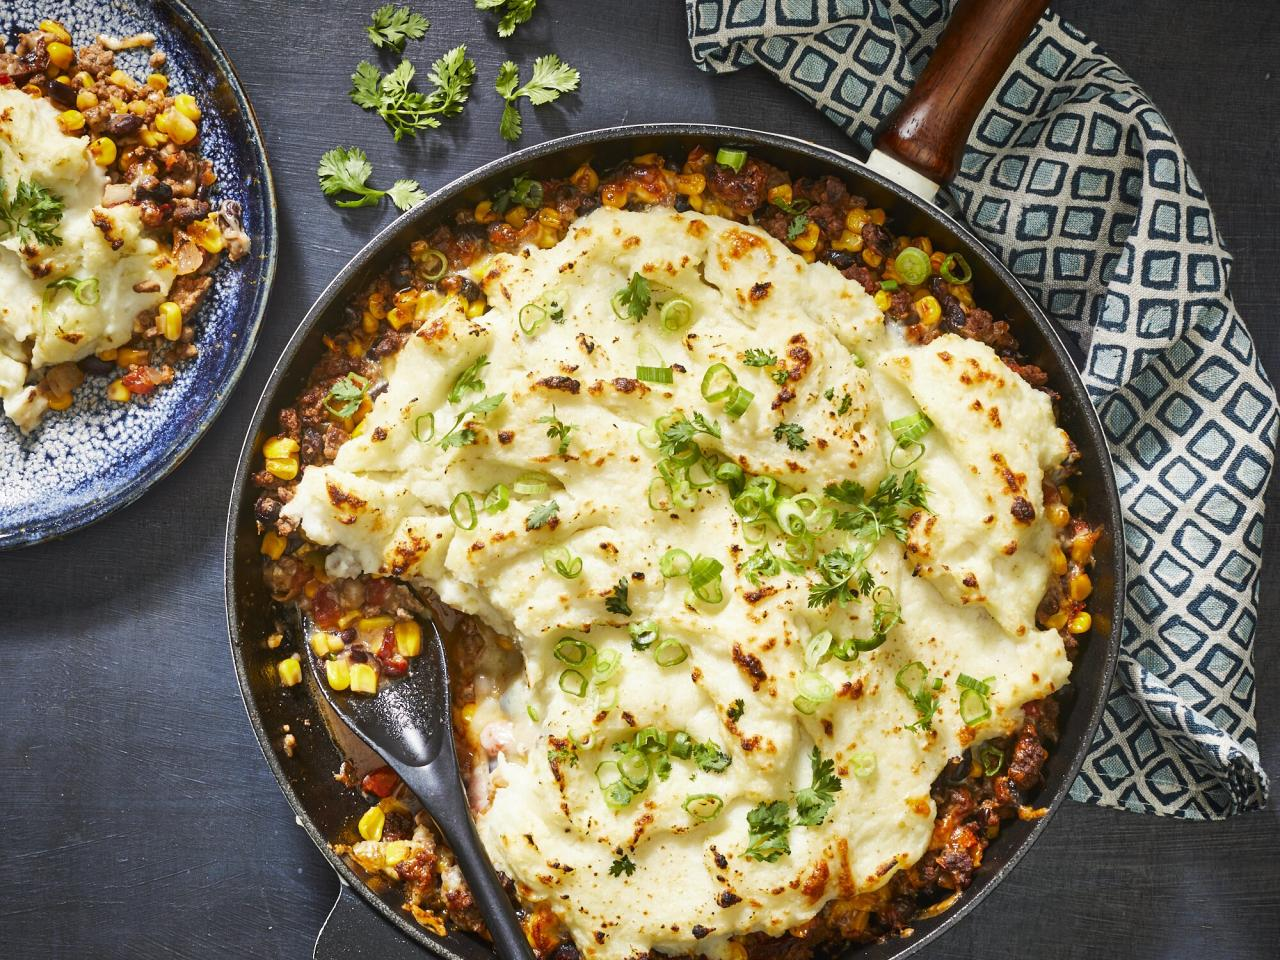 "<p>Shepherd's pie just got easier. This comfort dish takes advantage of a few shortcuts that don't lesson the flavor or quality of the meal, like refrigerated mashed potatoes and pico de gallo, so you can get dinner on the table fast. Make sure to brown your meat nicely, since it builds flavor. Substitute cheddar cheese for pepper jack, if you prefer it. </p> <p><a href=""https://www.myrecipes.com/recipe/easy-tex-mex-shepherds-pie"">Easy Tex-Mex Shepherd's Pie Recipe</a></p>"